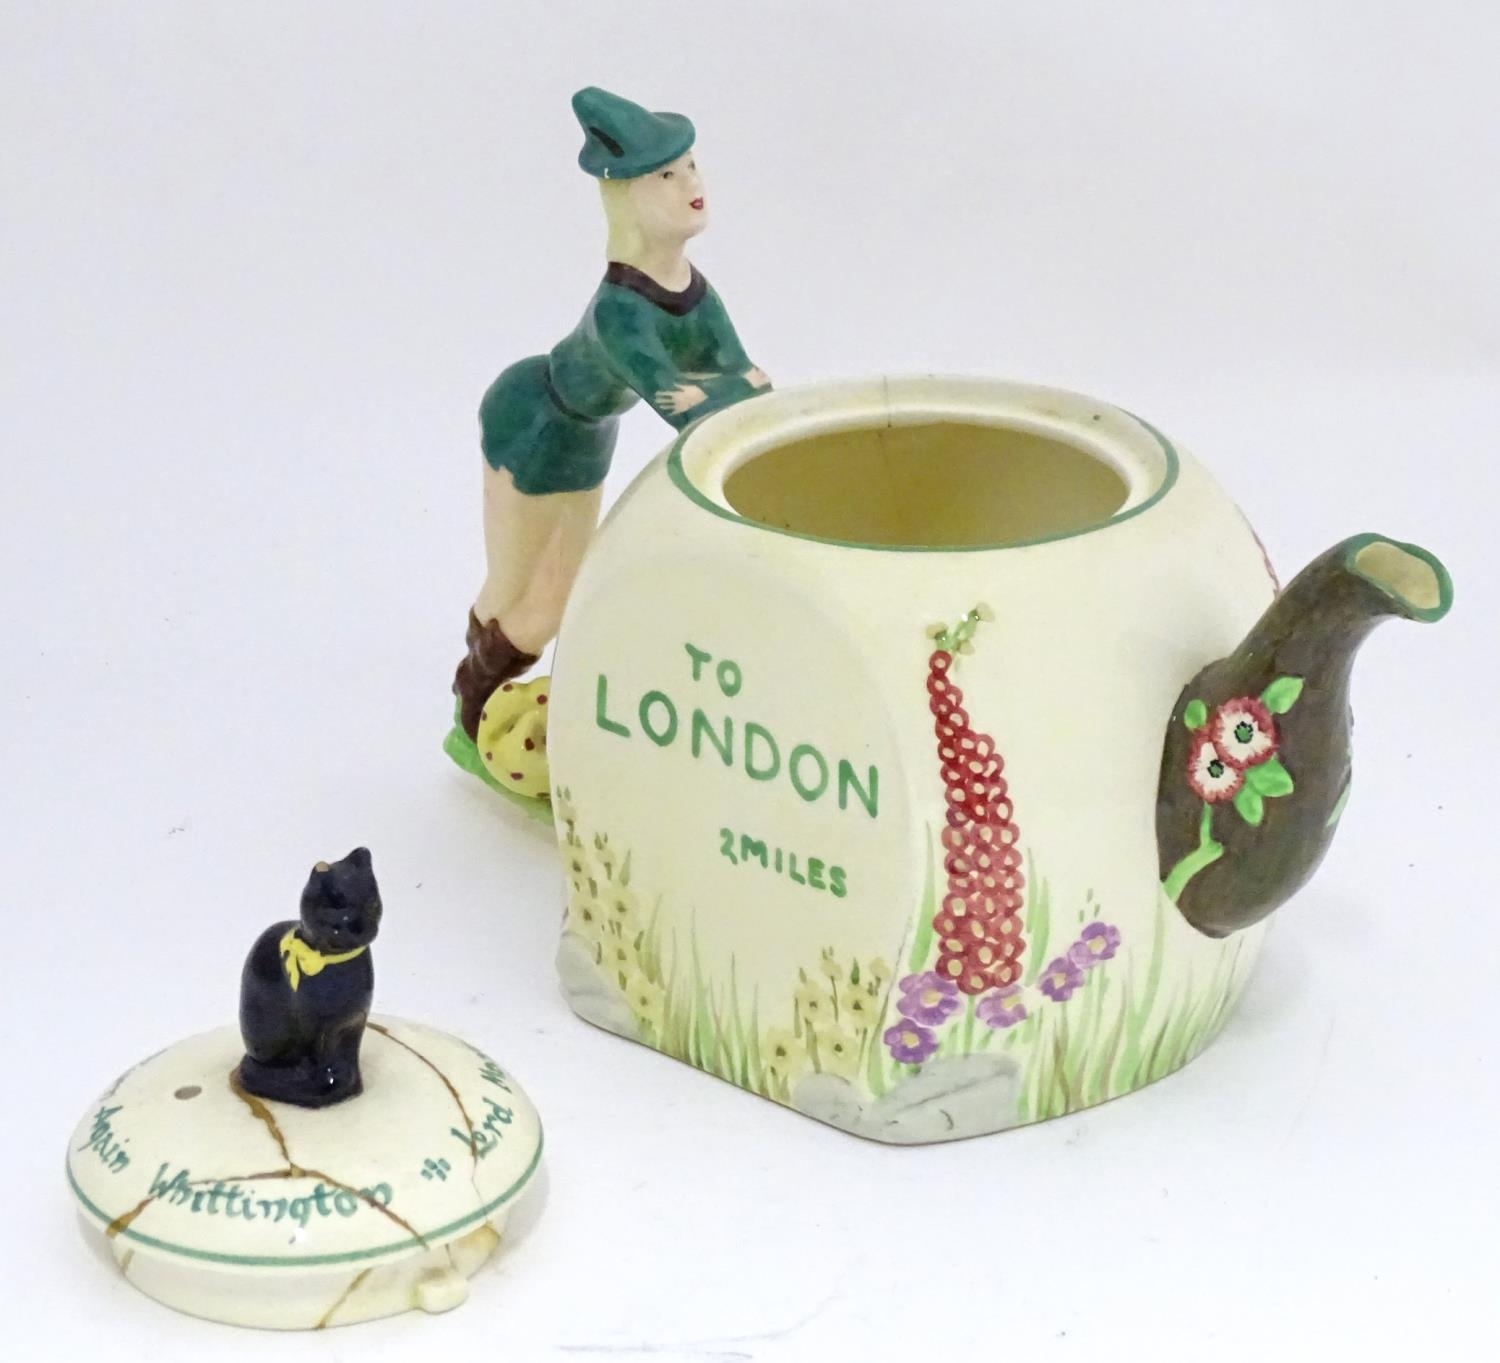 A novelty Dick Whittington teapot Please Note - we do not make reference to the condition of lots - Image 5 of 6